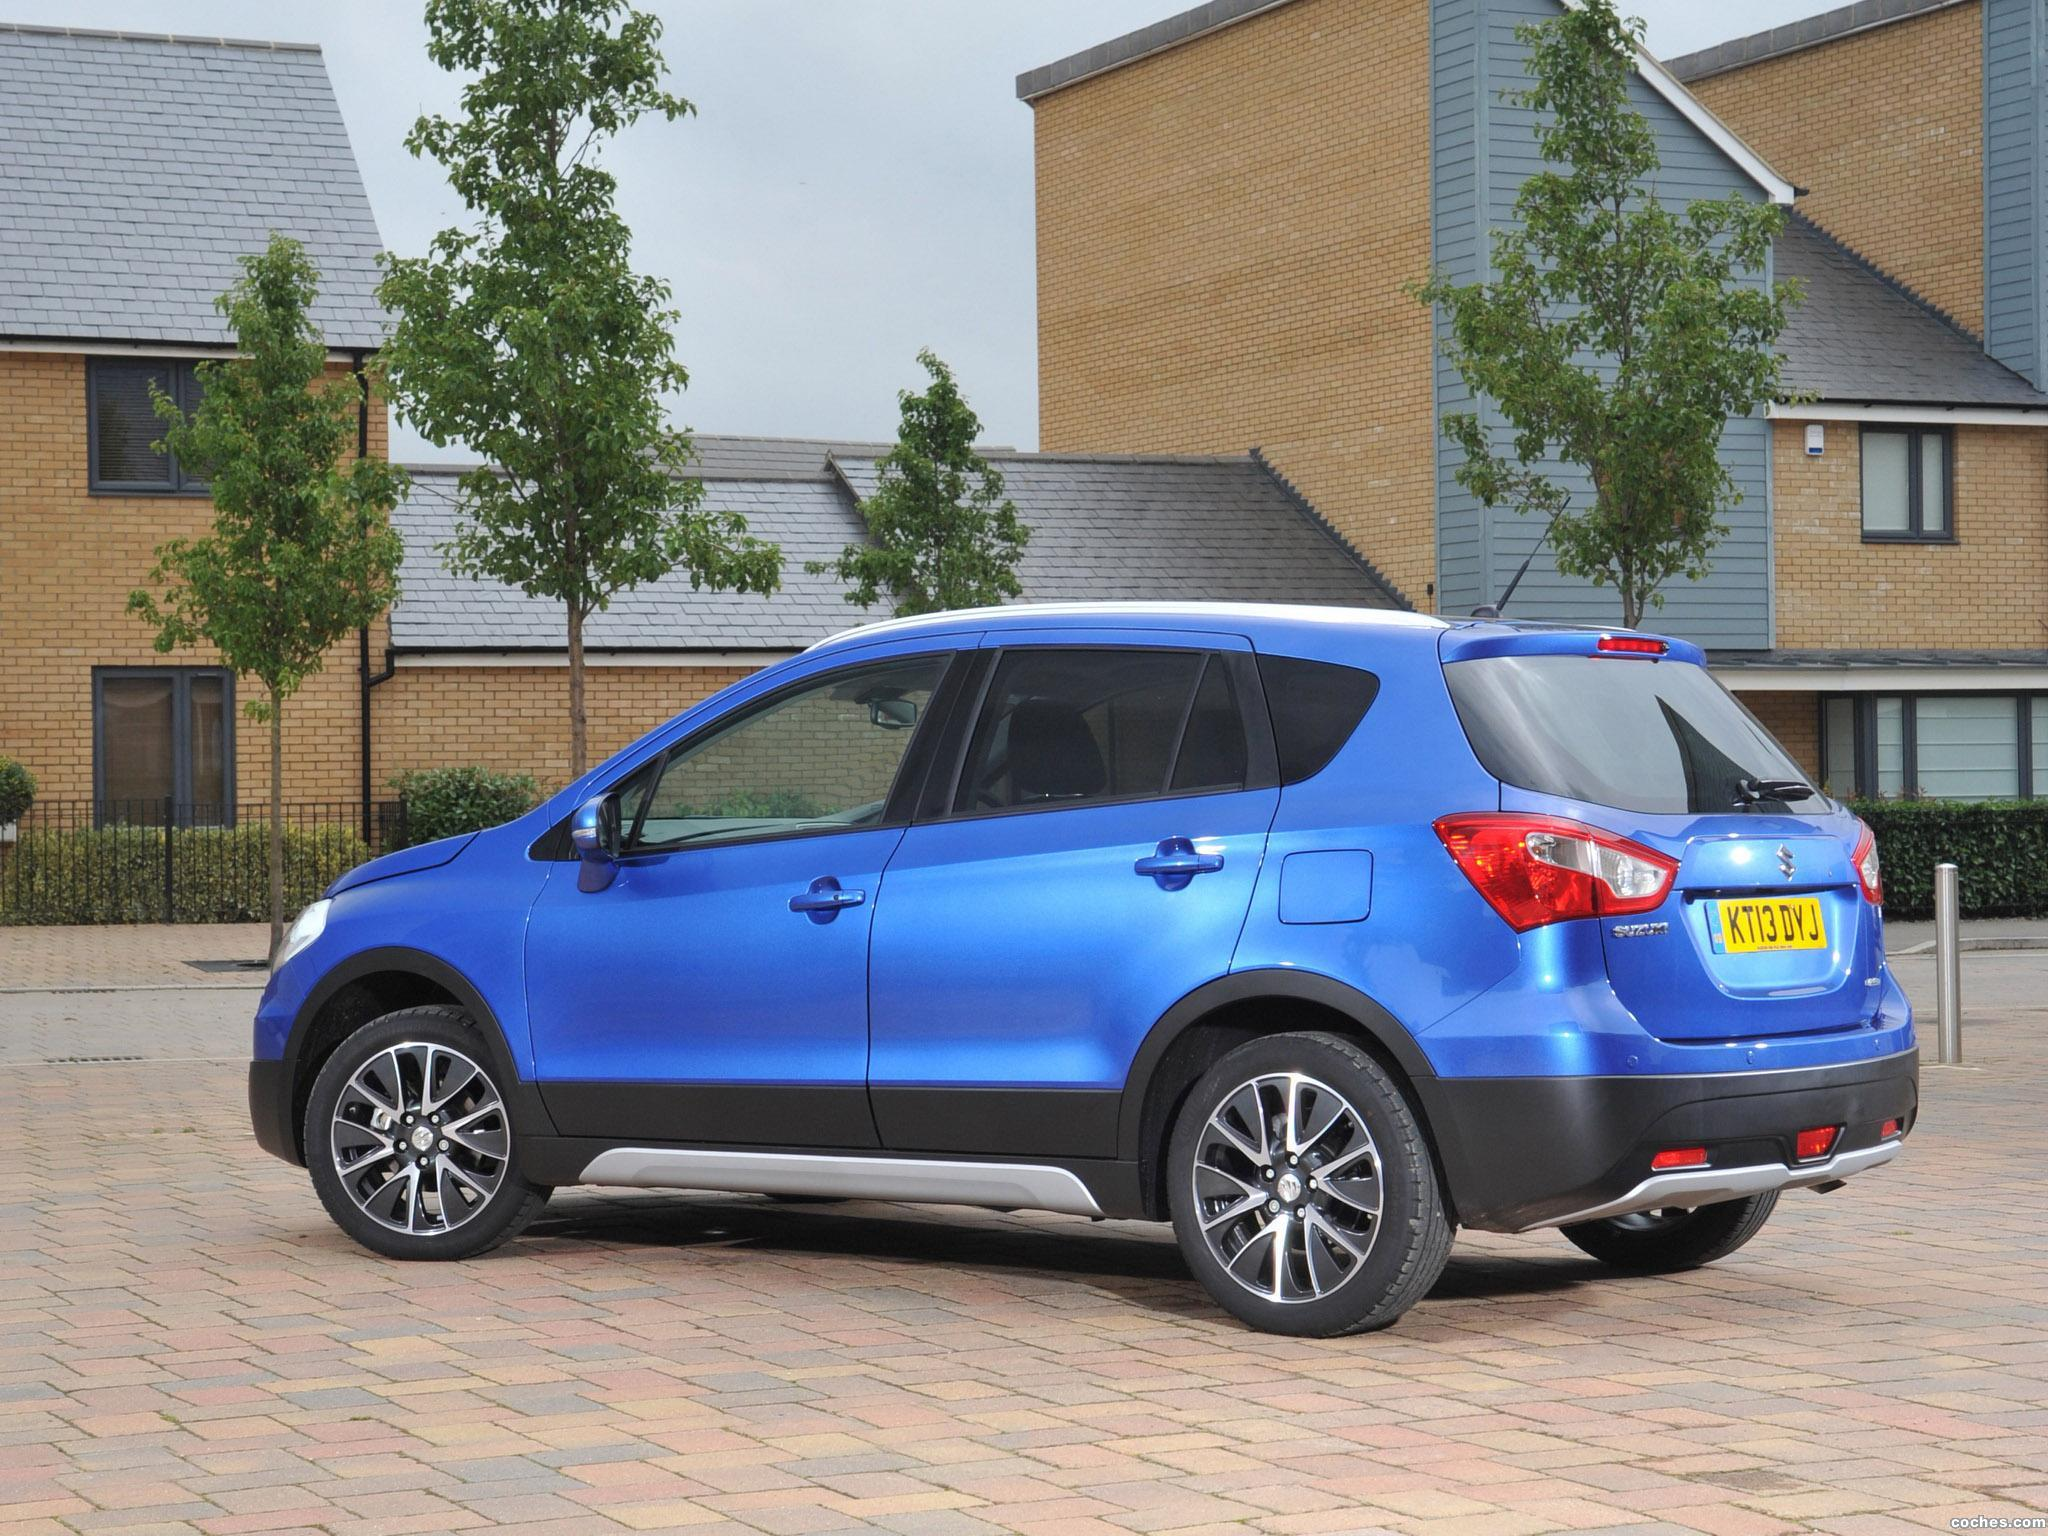 Foto 1 de Suzuki SX4 S-Cross UK 2013